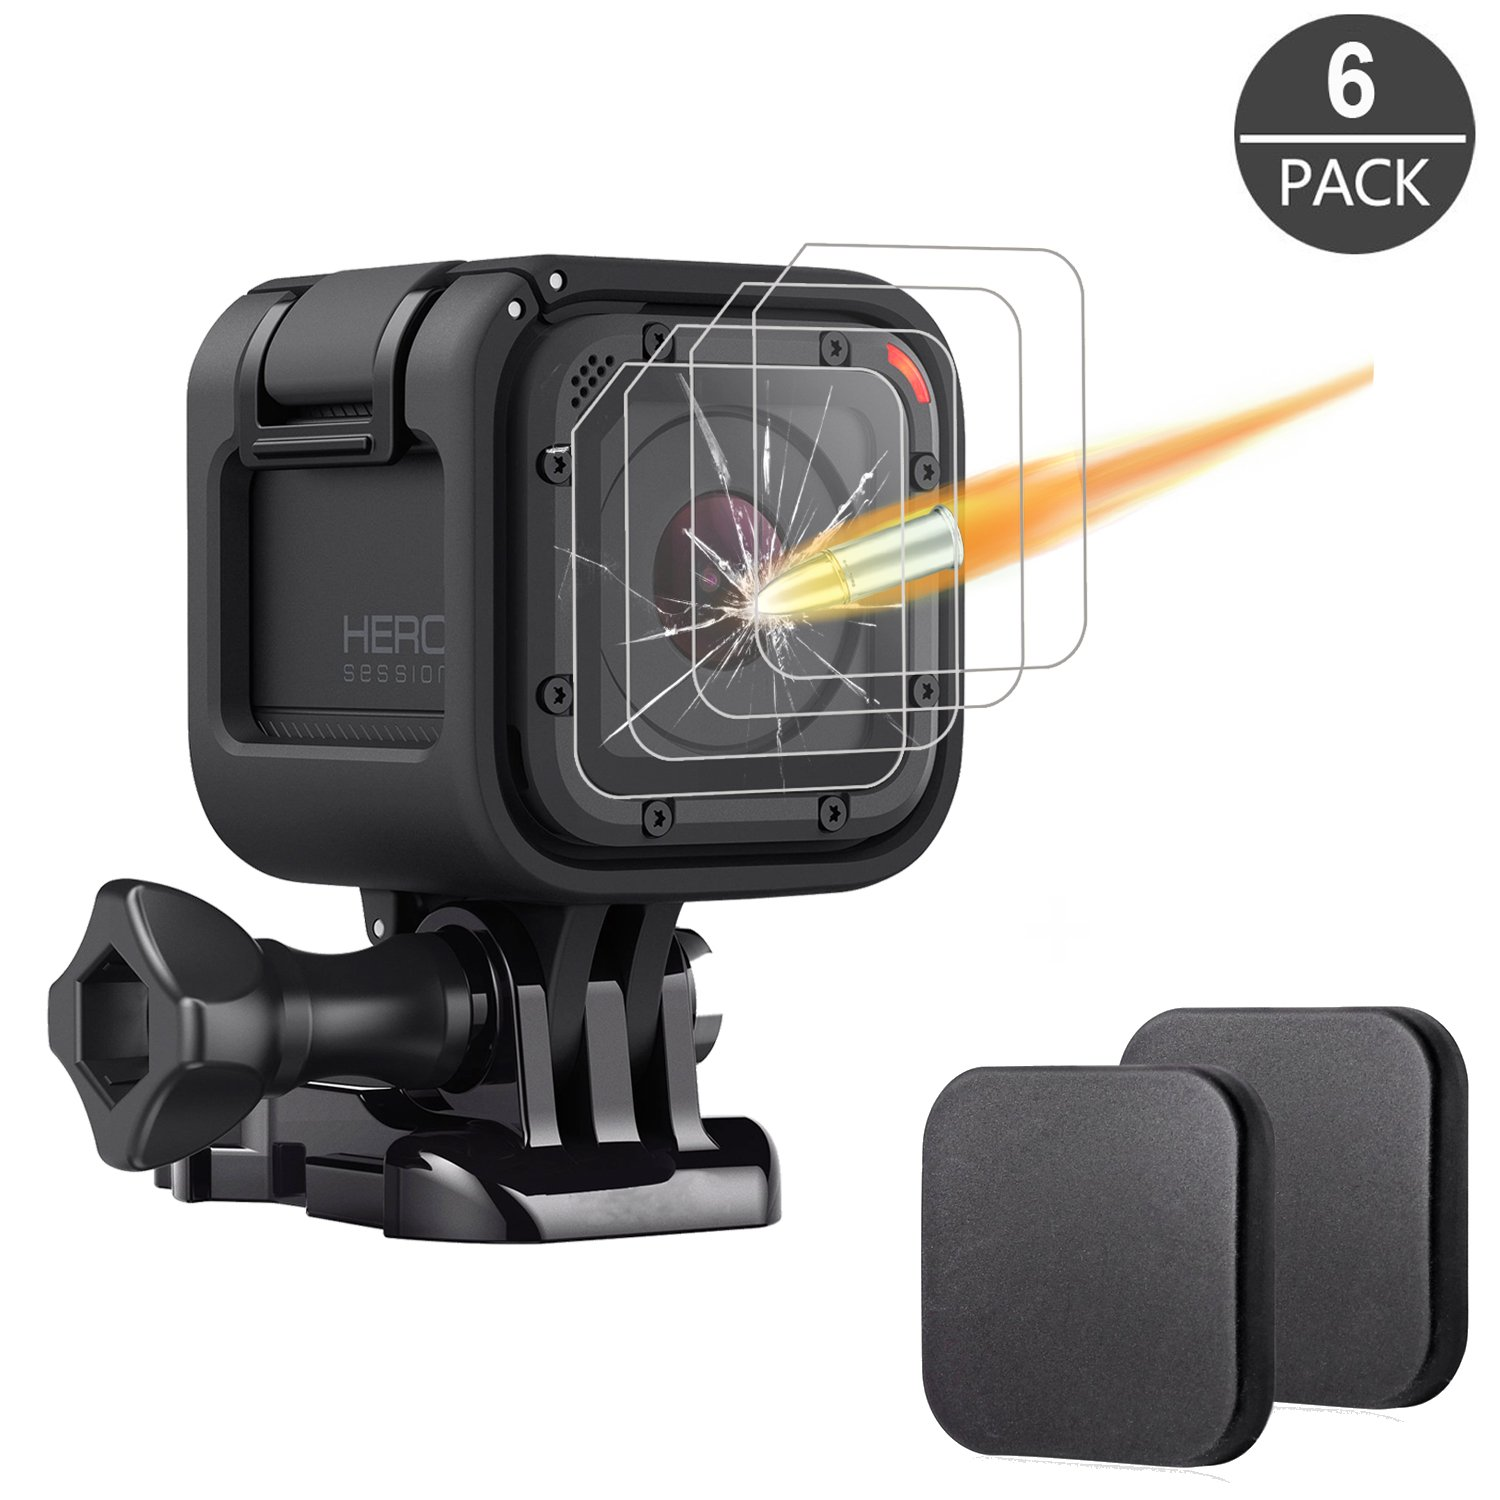 [6 Pack] Tempered-Glass Screen Protector for GoPro Hero 5 Black Hero 6 Black (2-Pack) & Lens protector (2-Pack) & Lens Cap Cover (2-Pack) By Akwox 4331965079